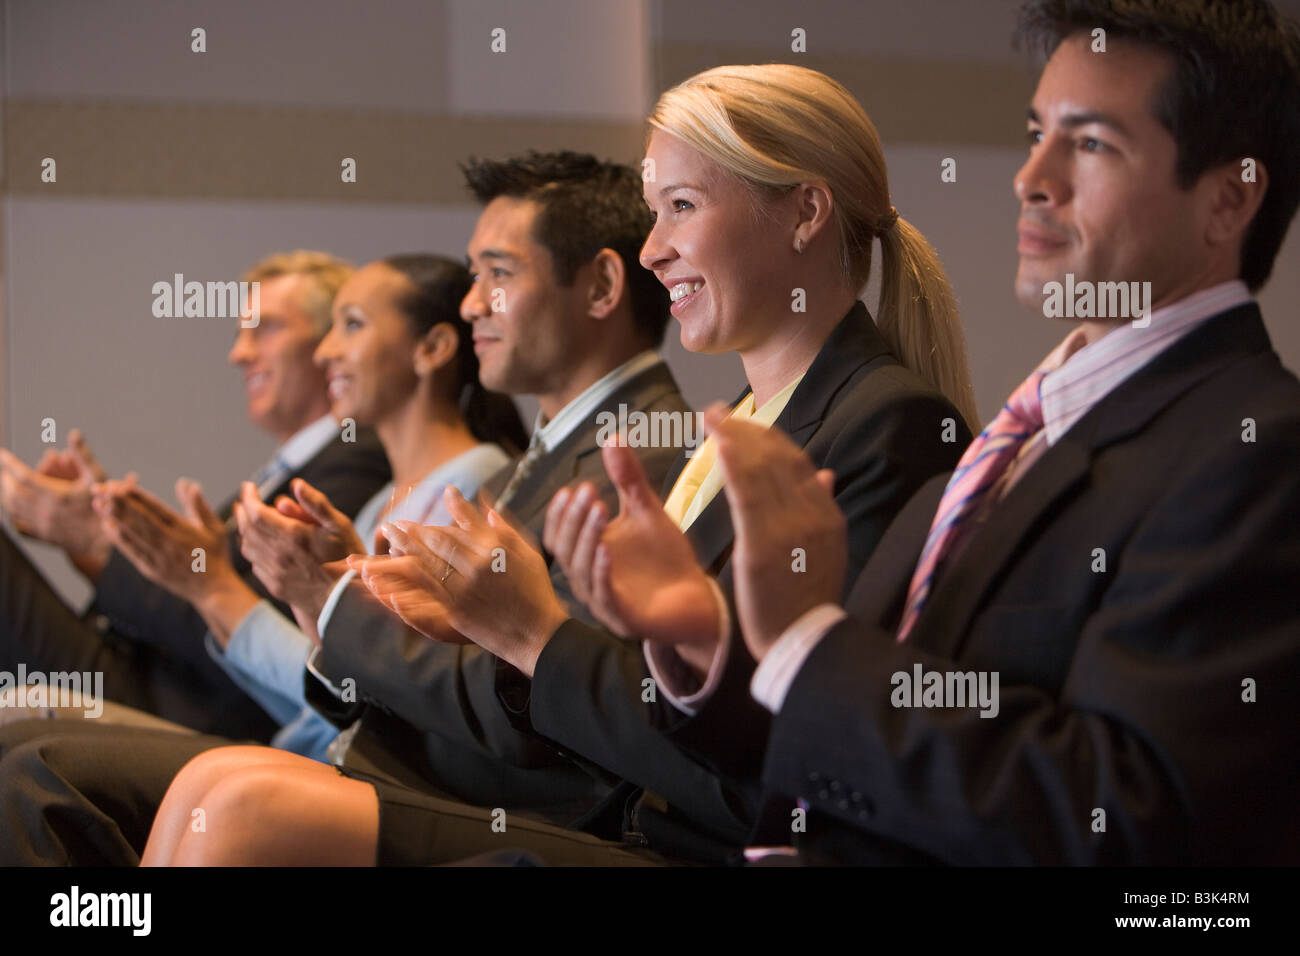 Five businesspeople applauding and smiling in presentation room - Stock Image